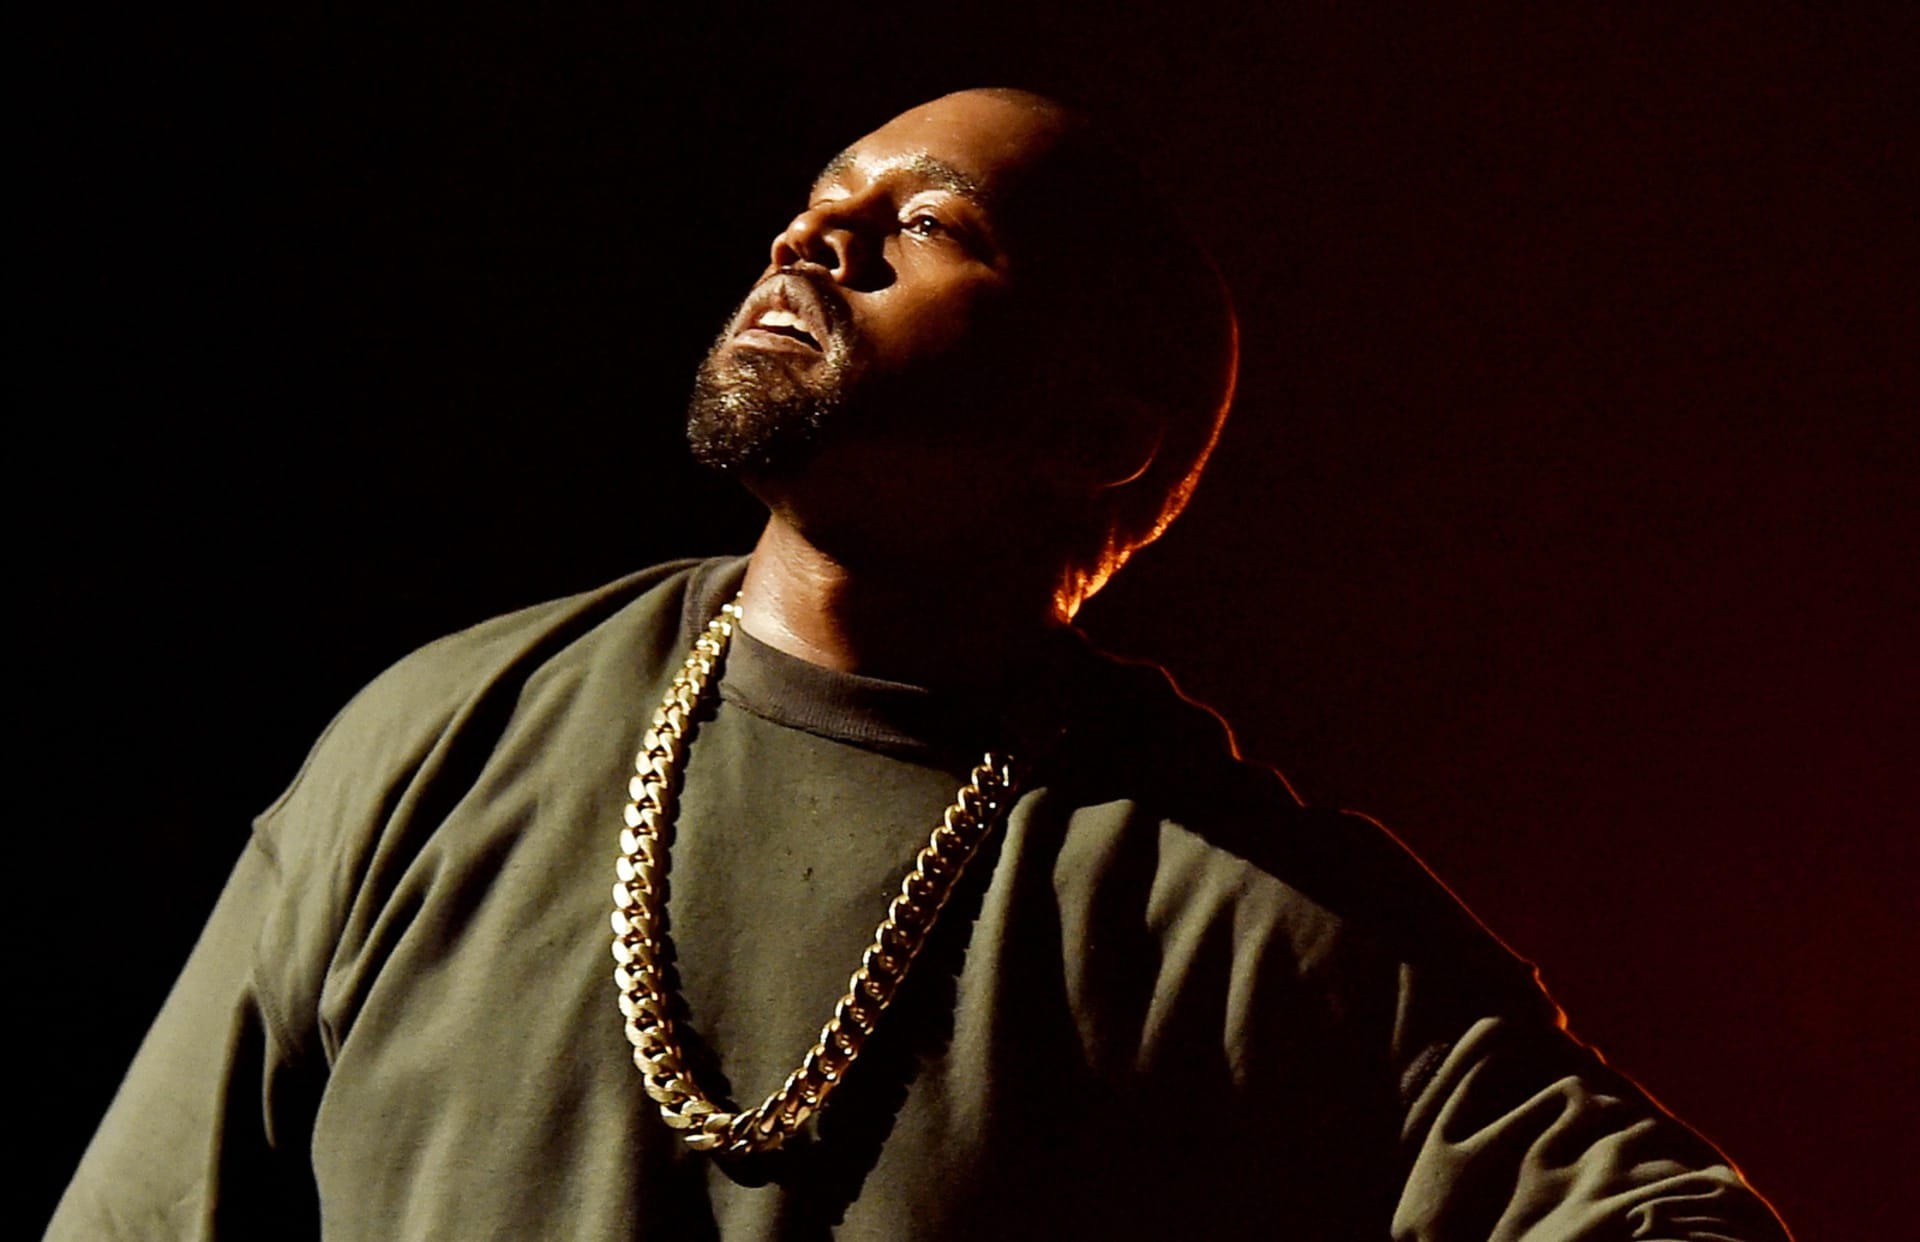 Kanye West's albums ranked best to worst